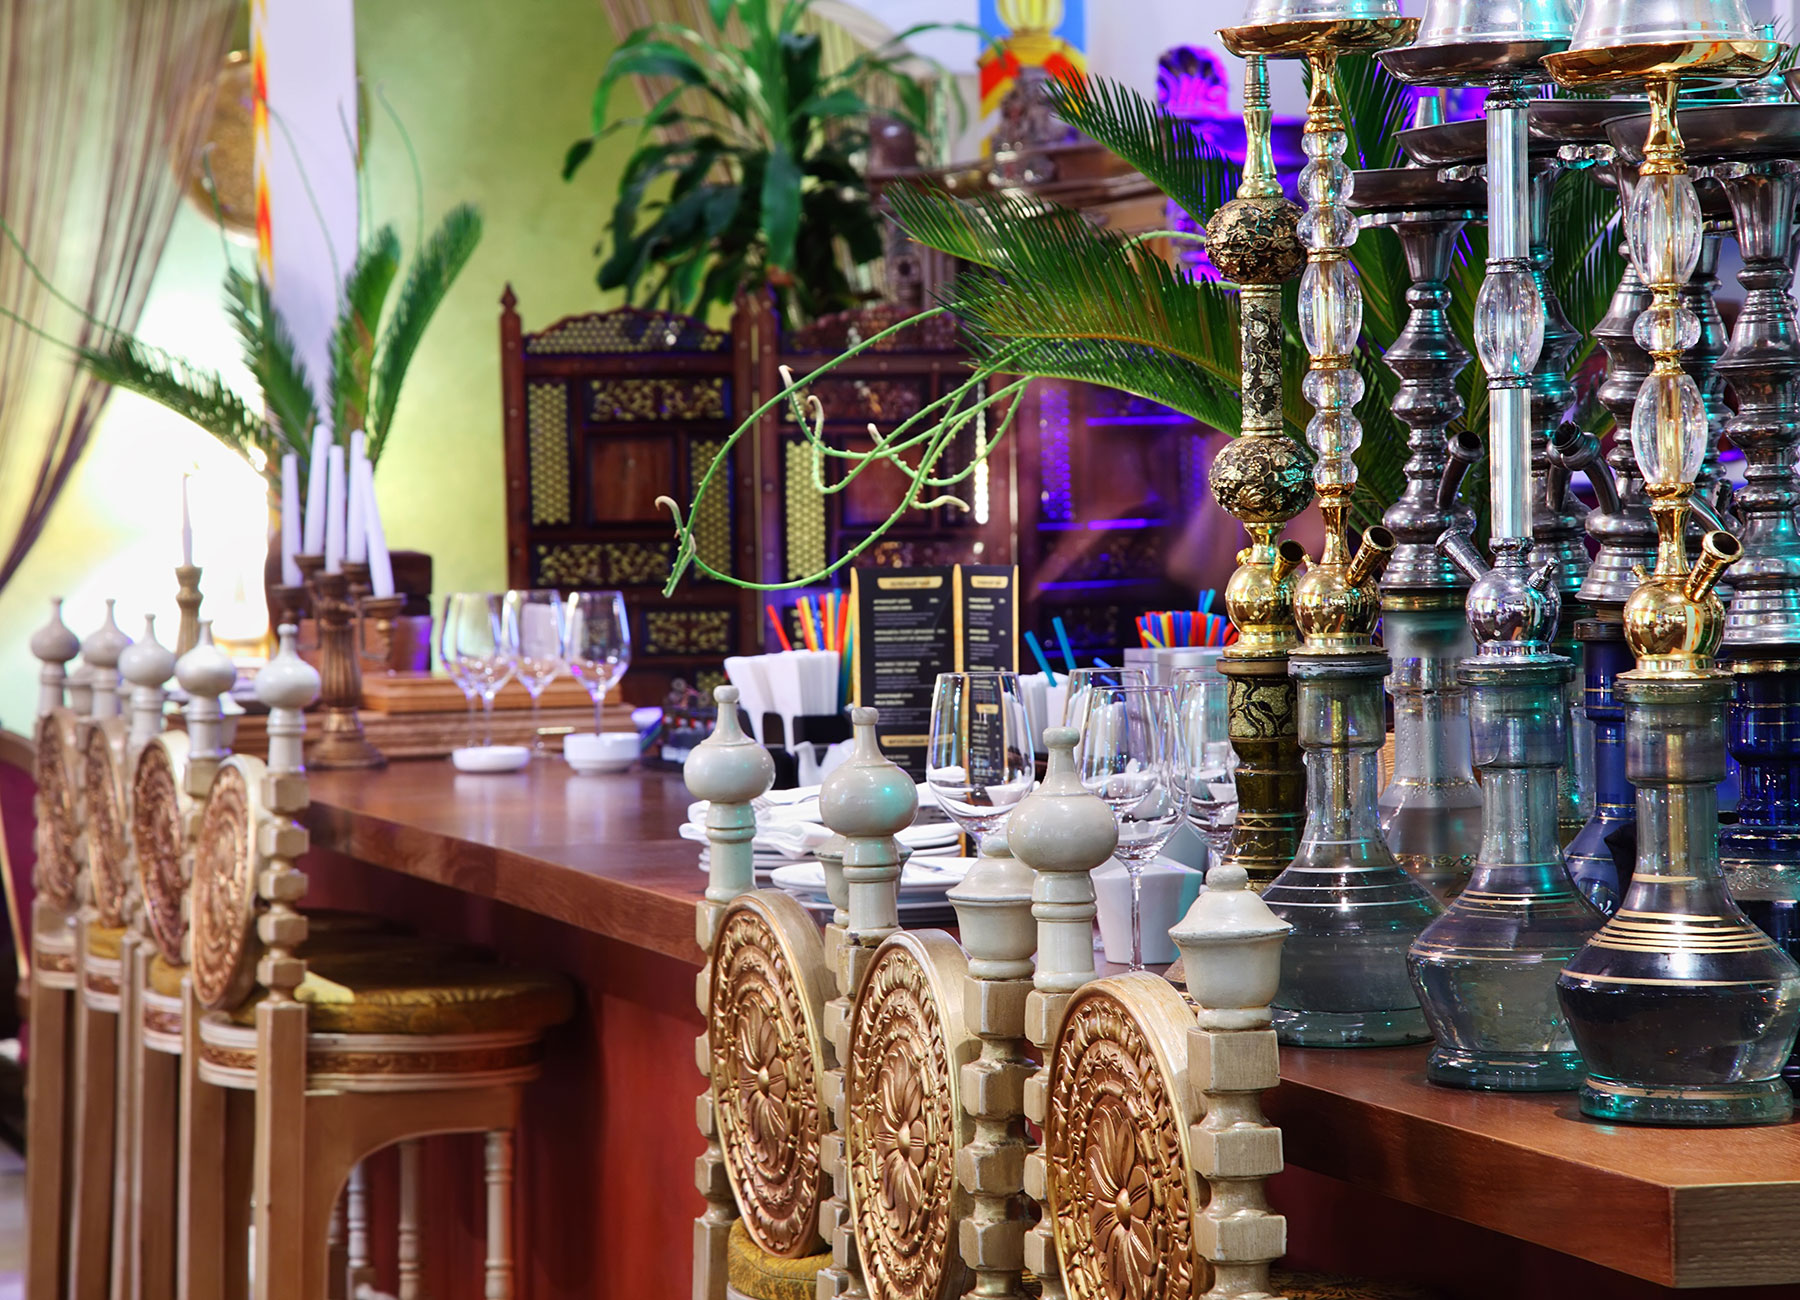 Hookahs stood on table in modern Indian restaurant